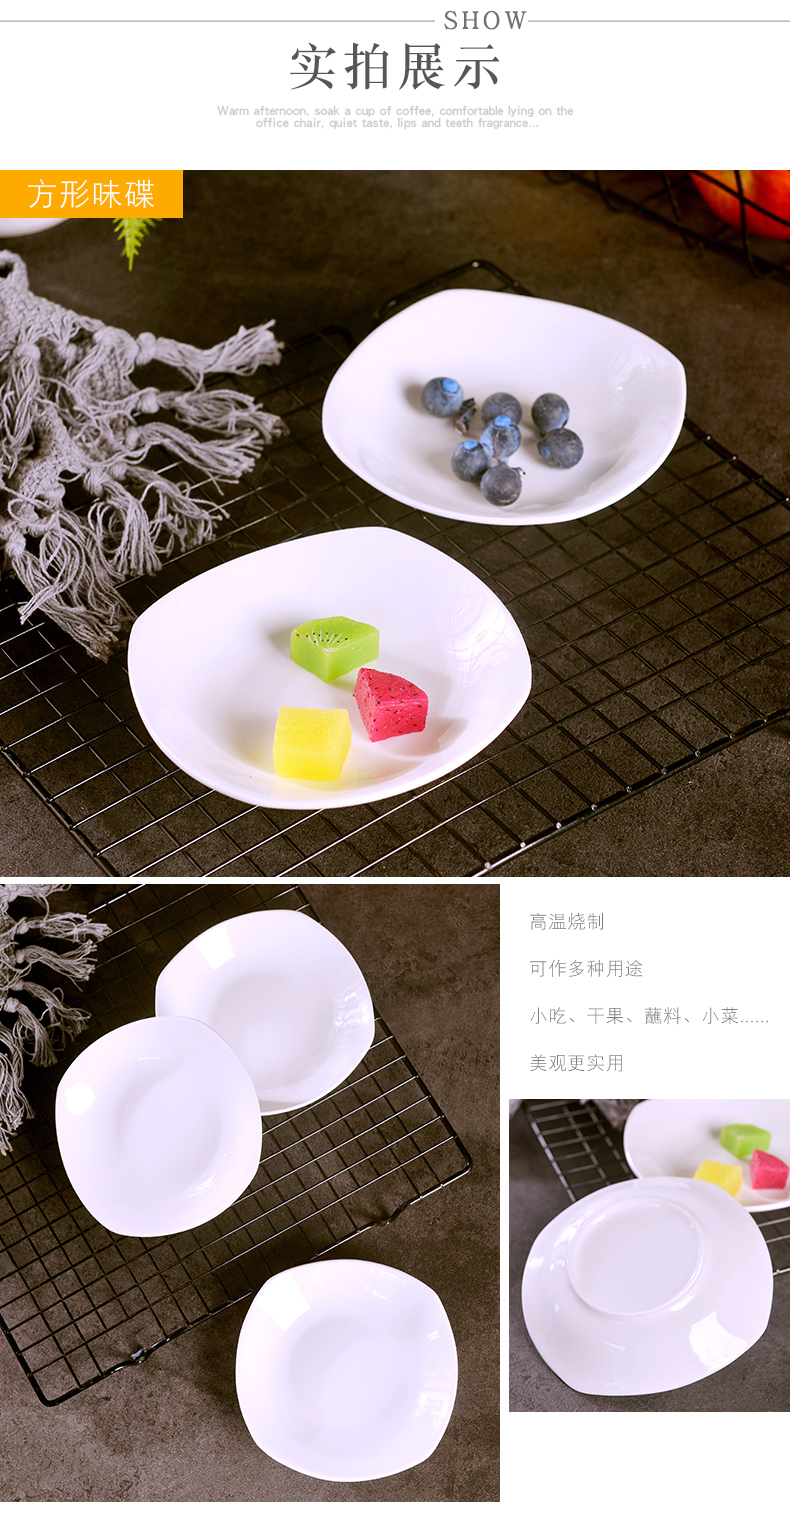 Household ceramics square flavour dish flavor pickle plate plate dips in circular vinegar sauce dish dish dish dish ipads China small butterfly